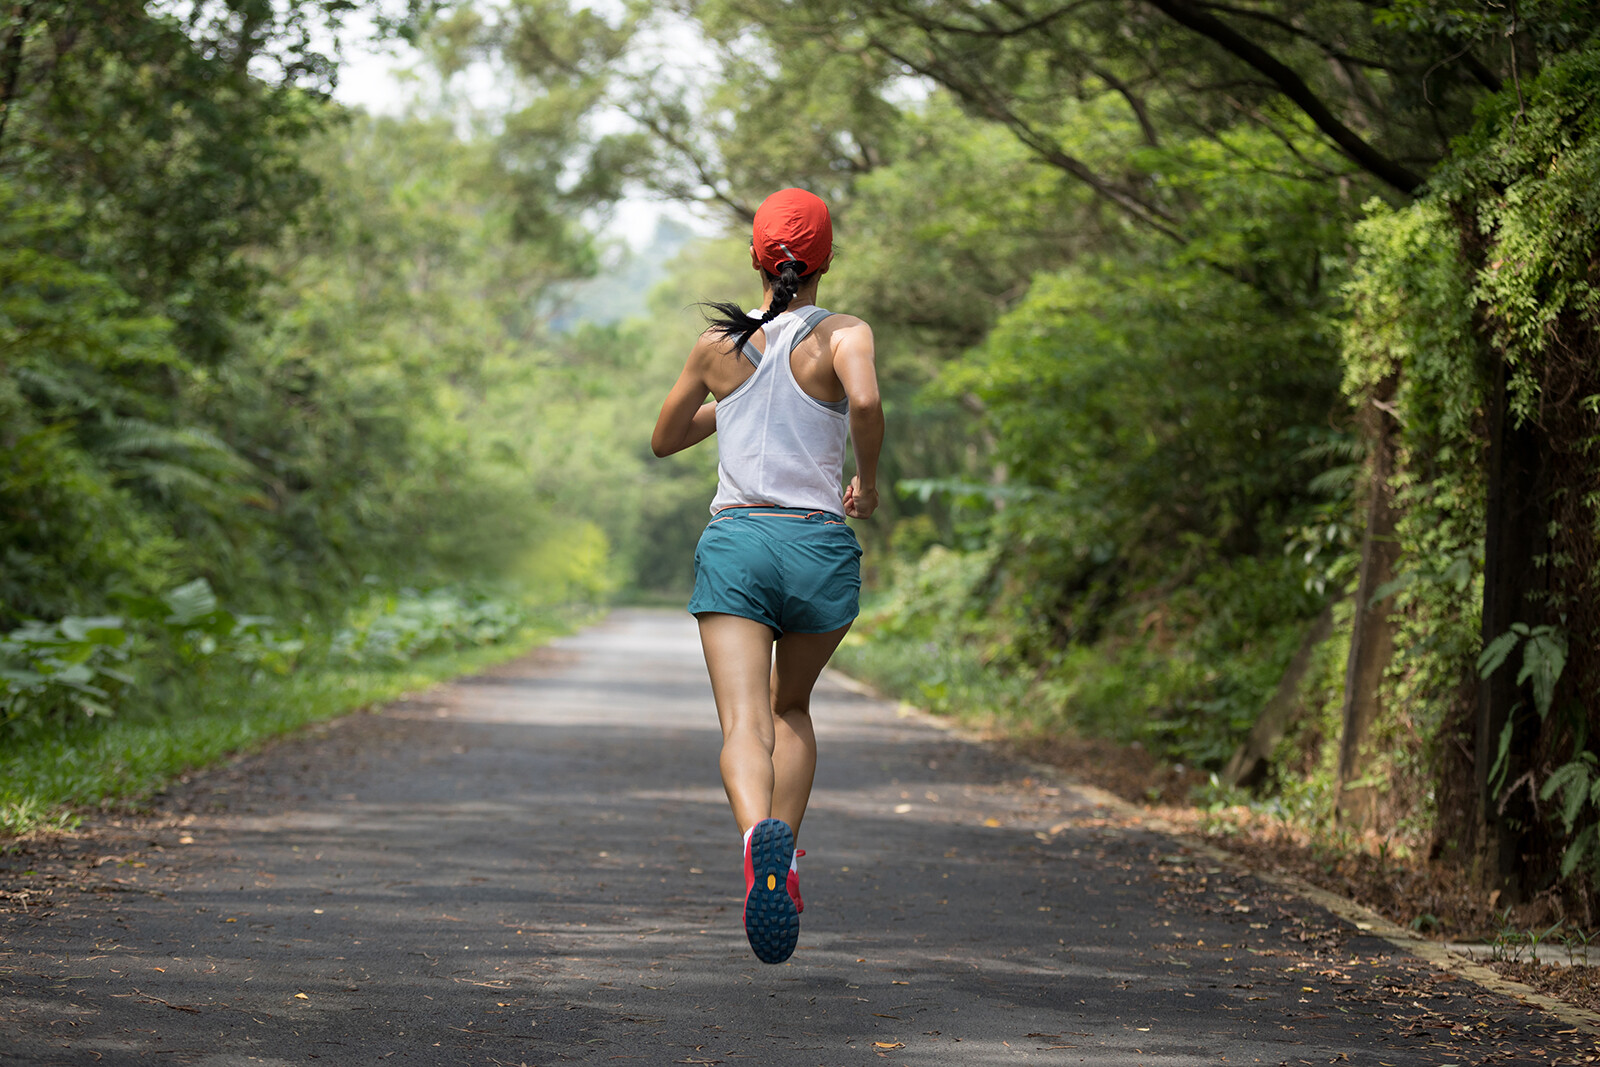 How to safely exercise outdoors when it's hot out